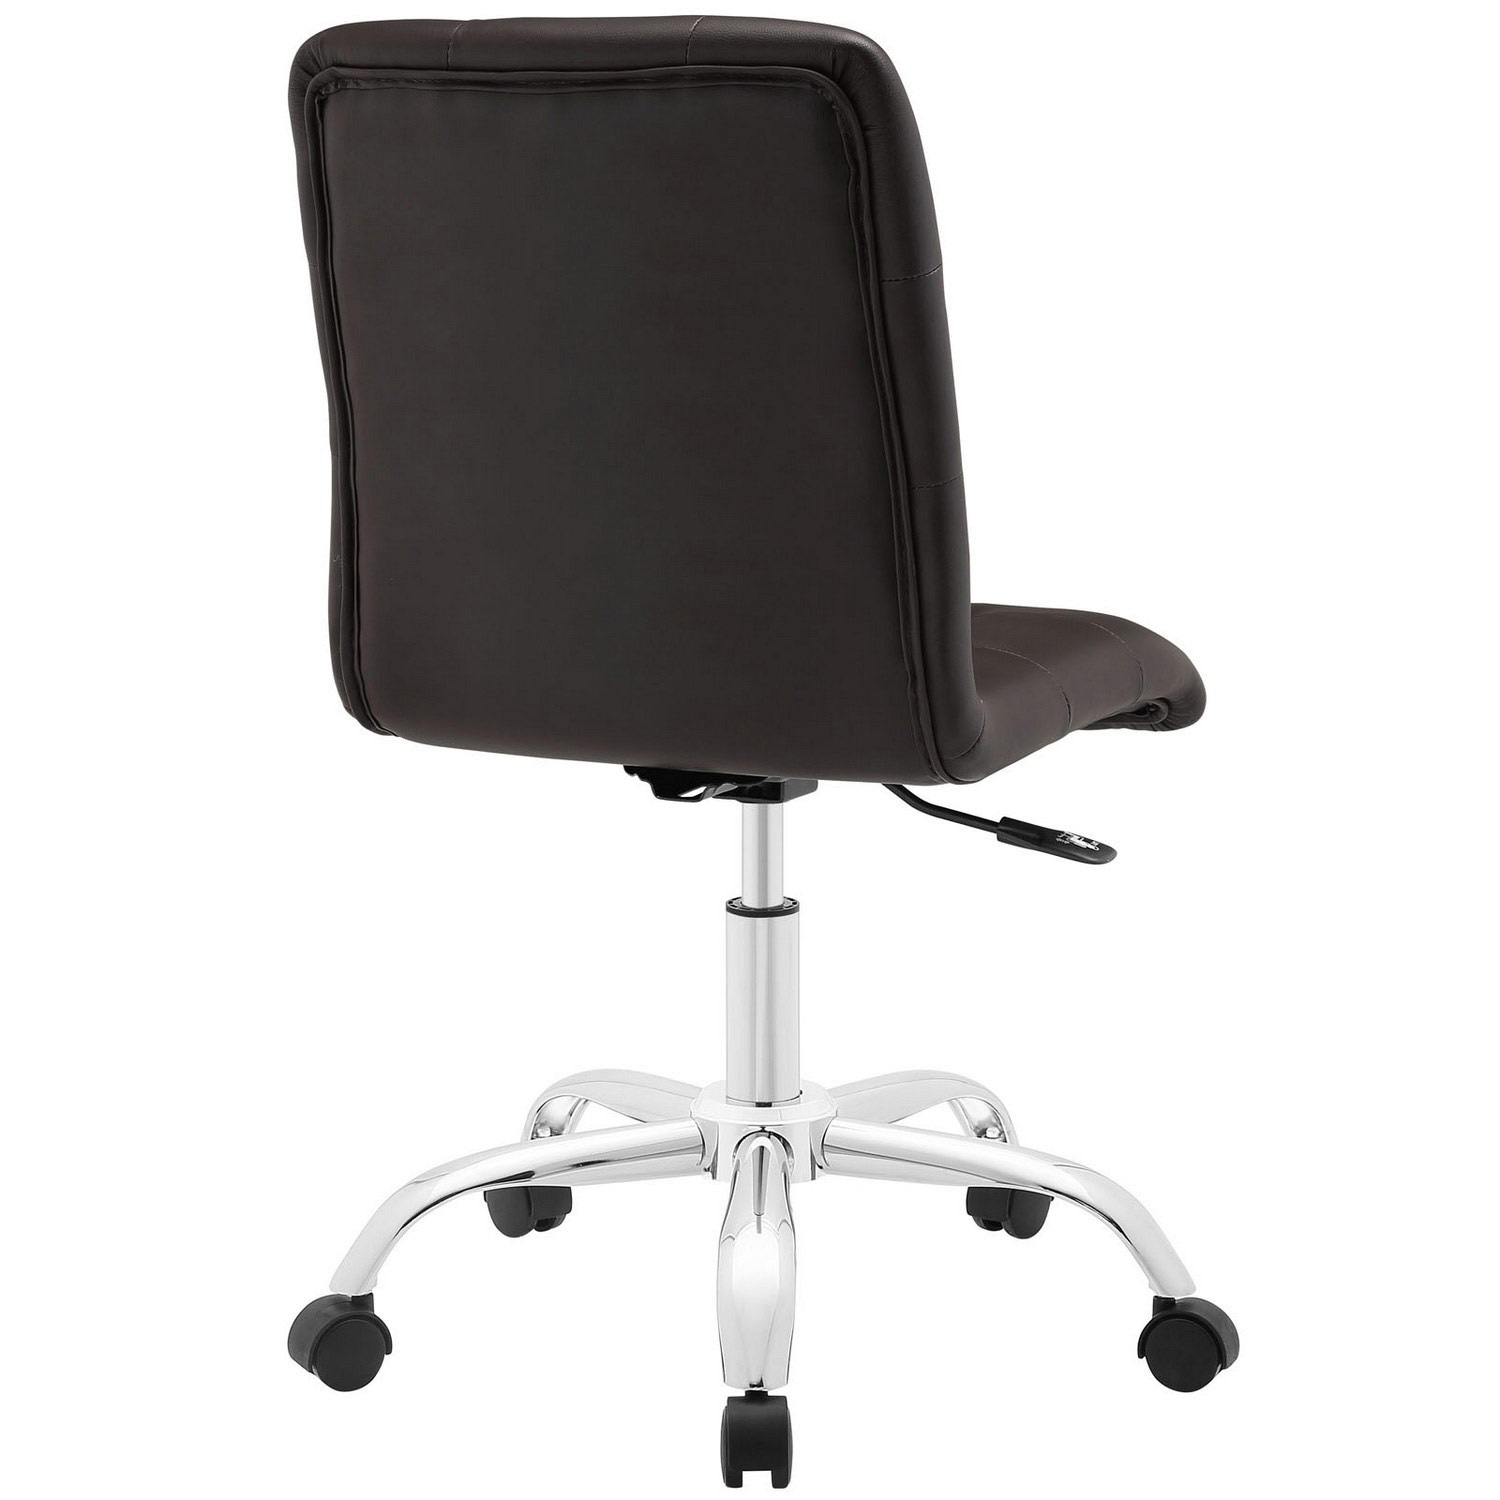 Modway Prim Armless Mid Back Office Chair - Brown